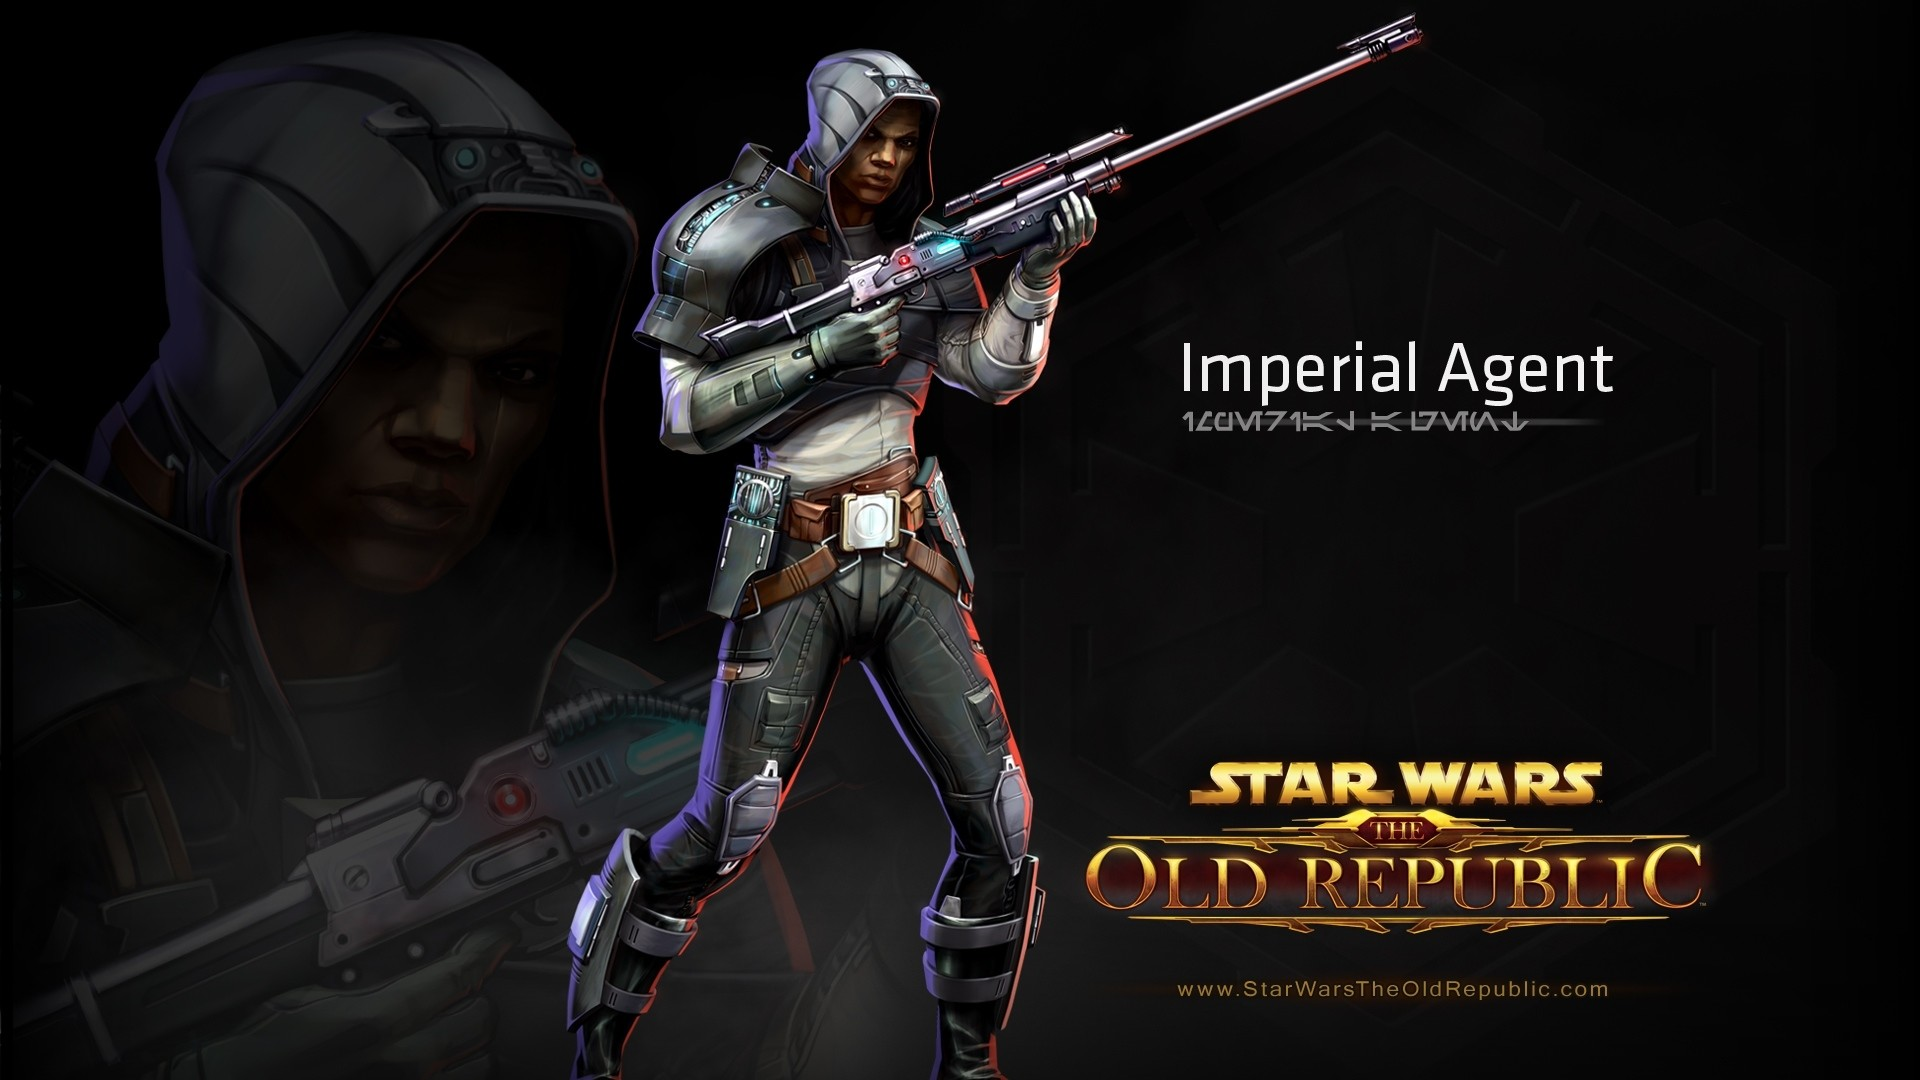 Wallpaper star wars the old republic, imperial agent, character,  gun